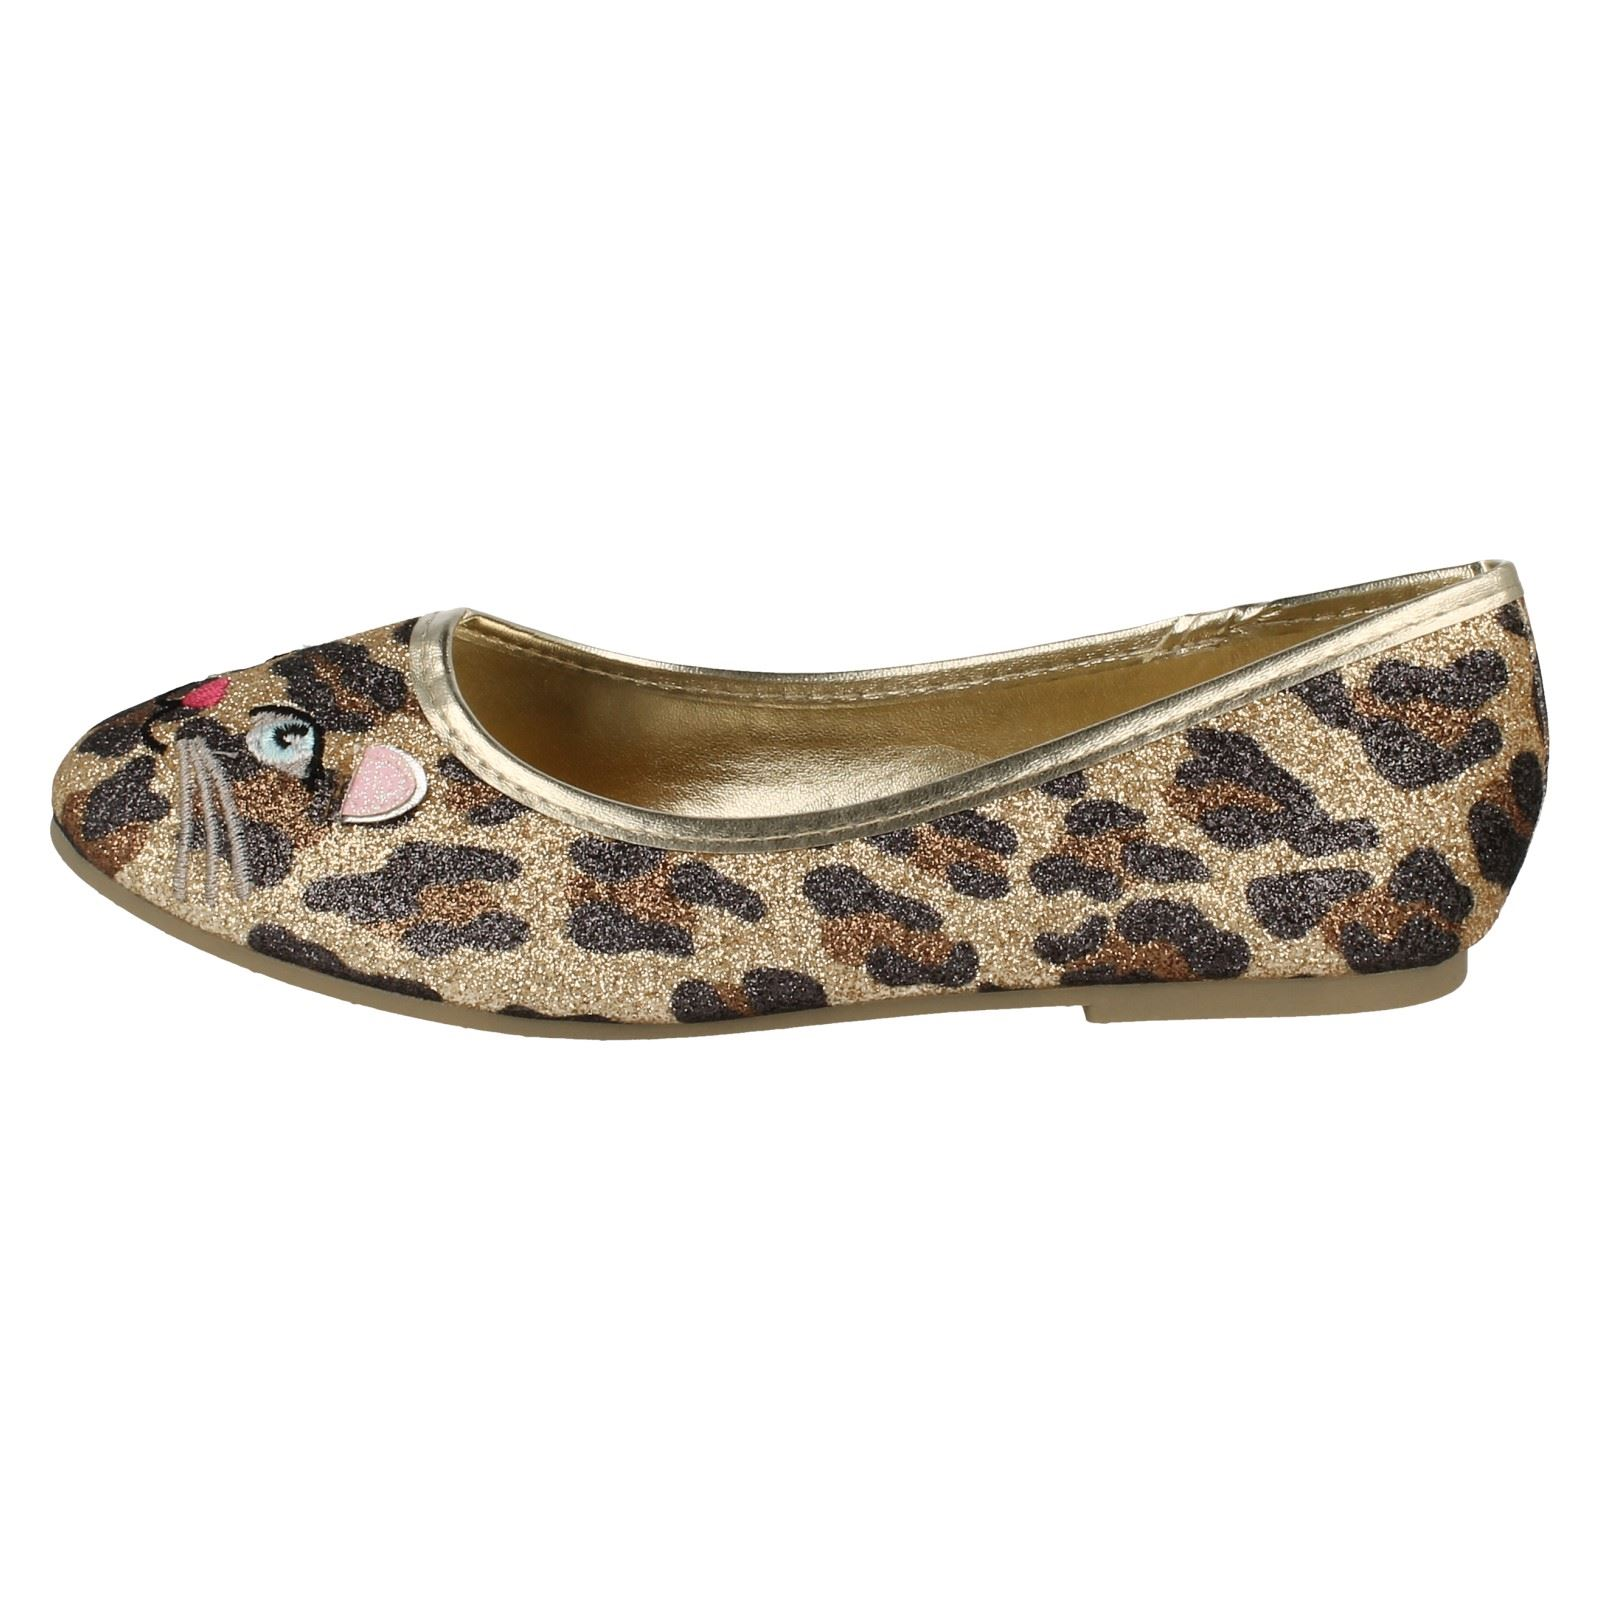 Girls Spot On Slip On Ballerina Dolly Style Flat Shoes With Cat Detail 'H2389'